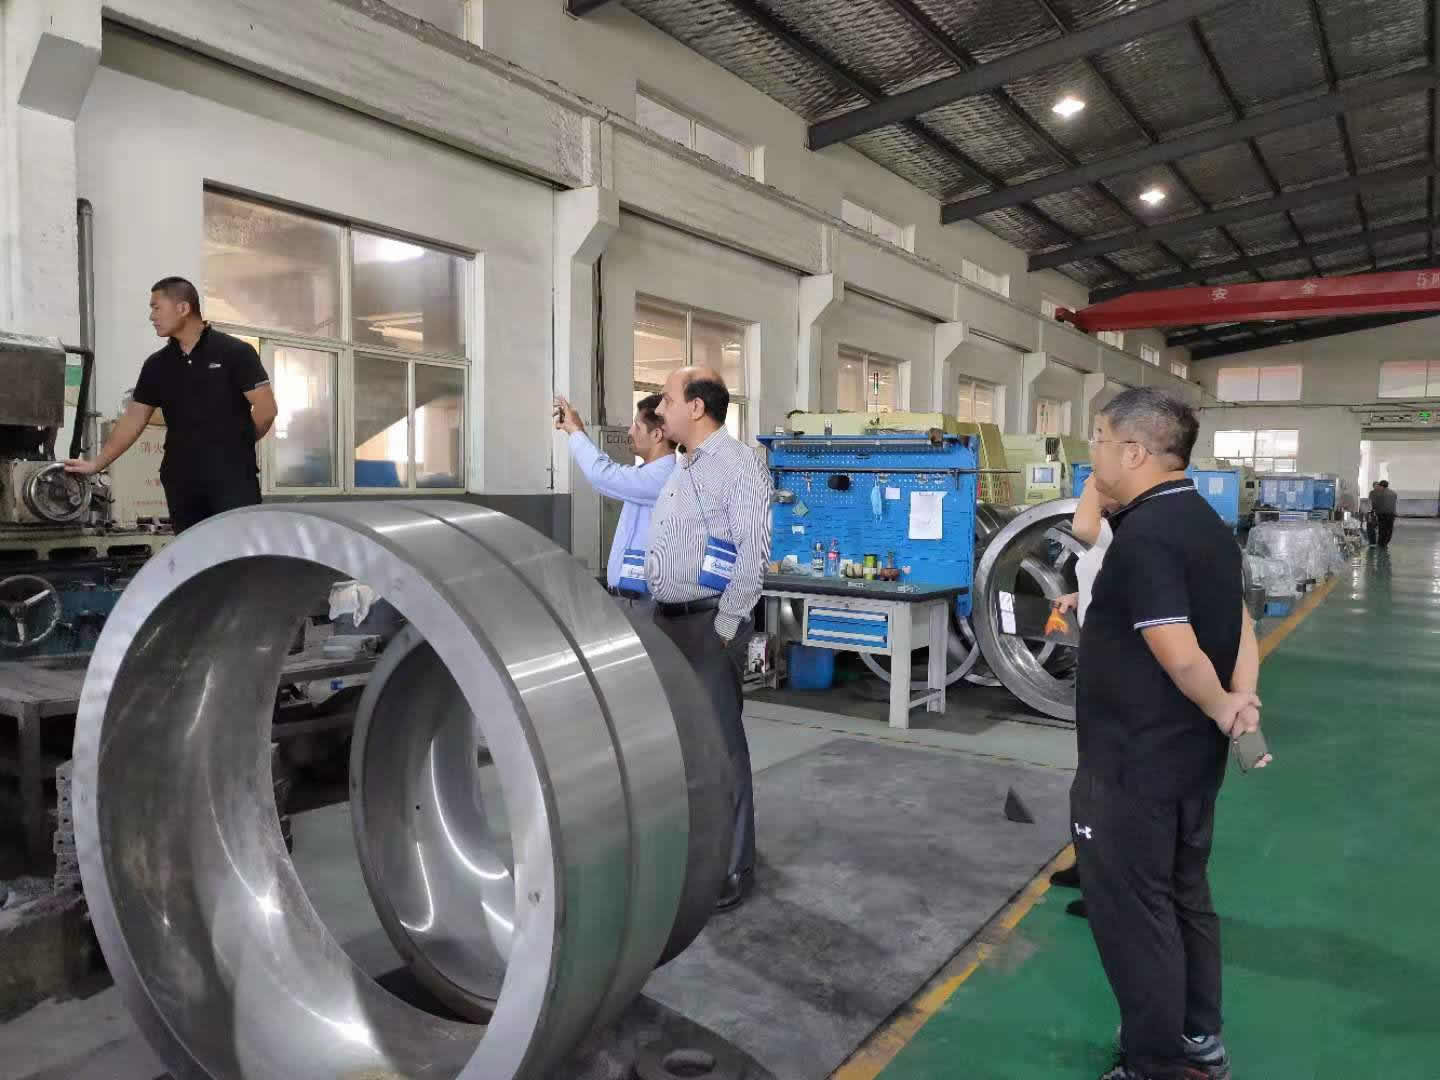 Middle East customers come to FV BEARING company to inspect industrial bearings